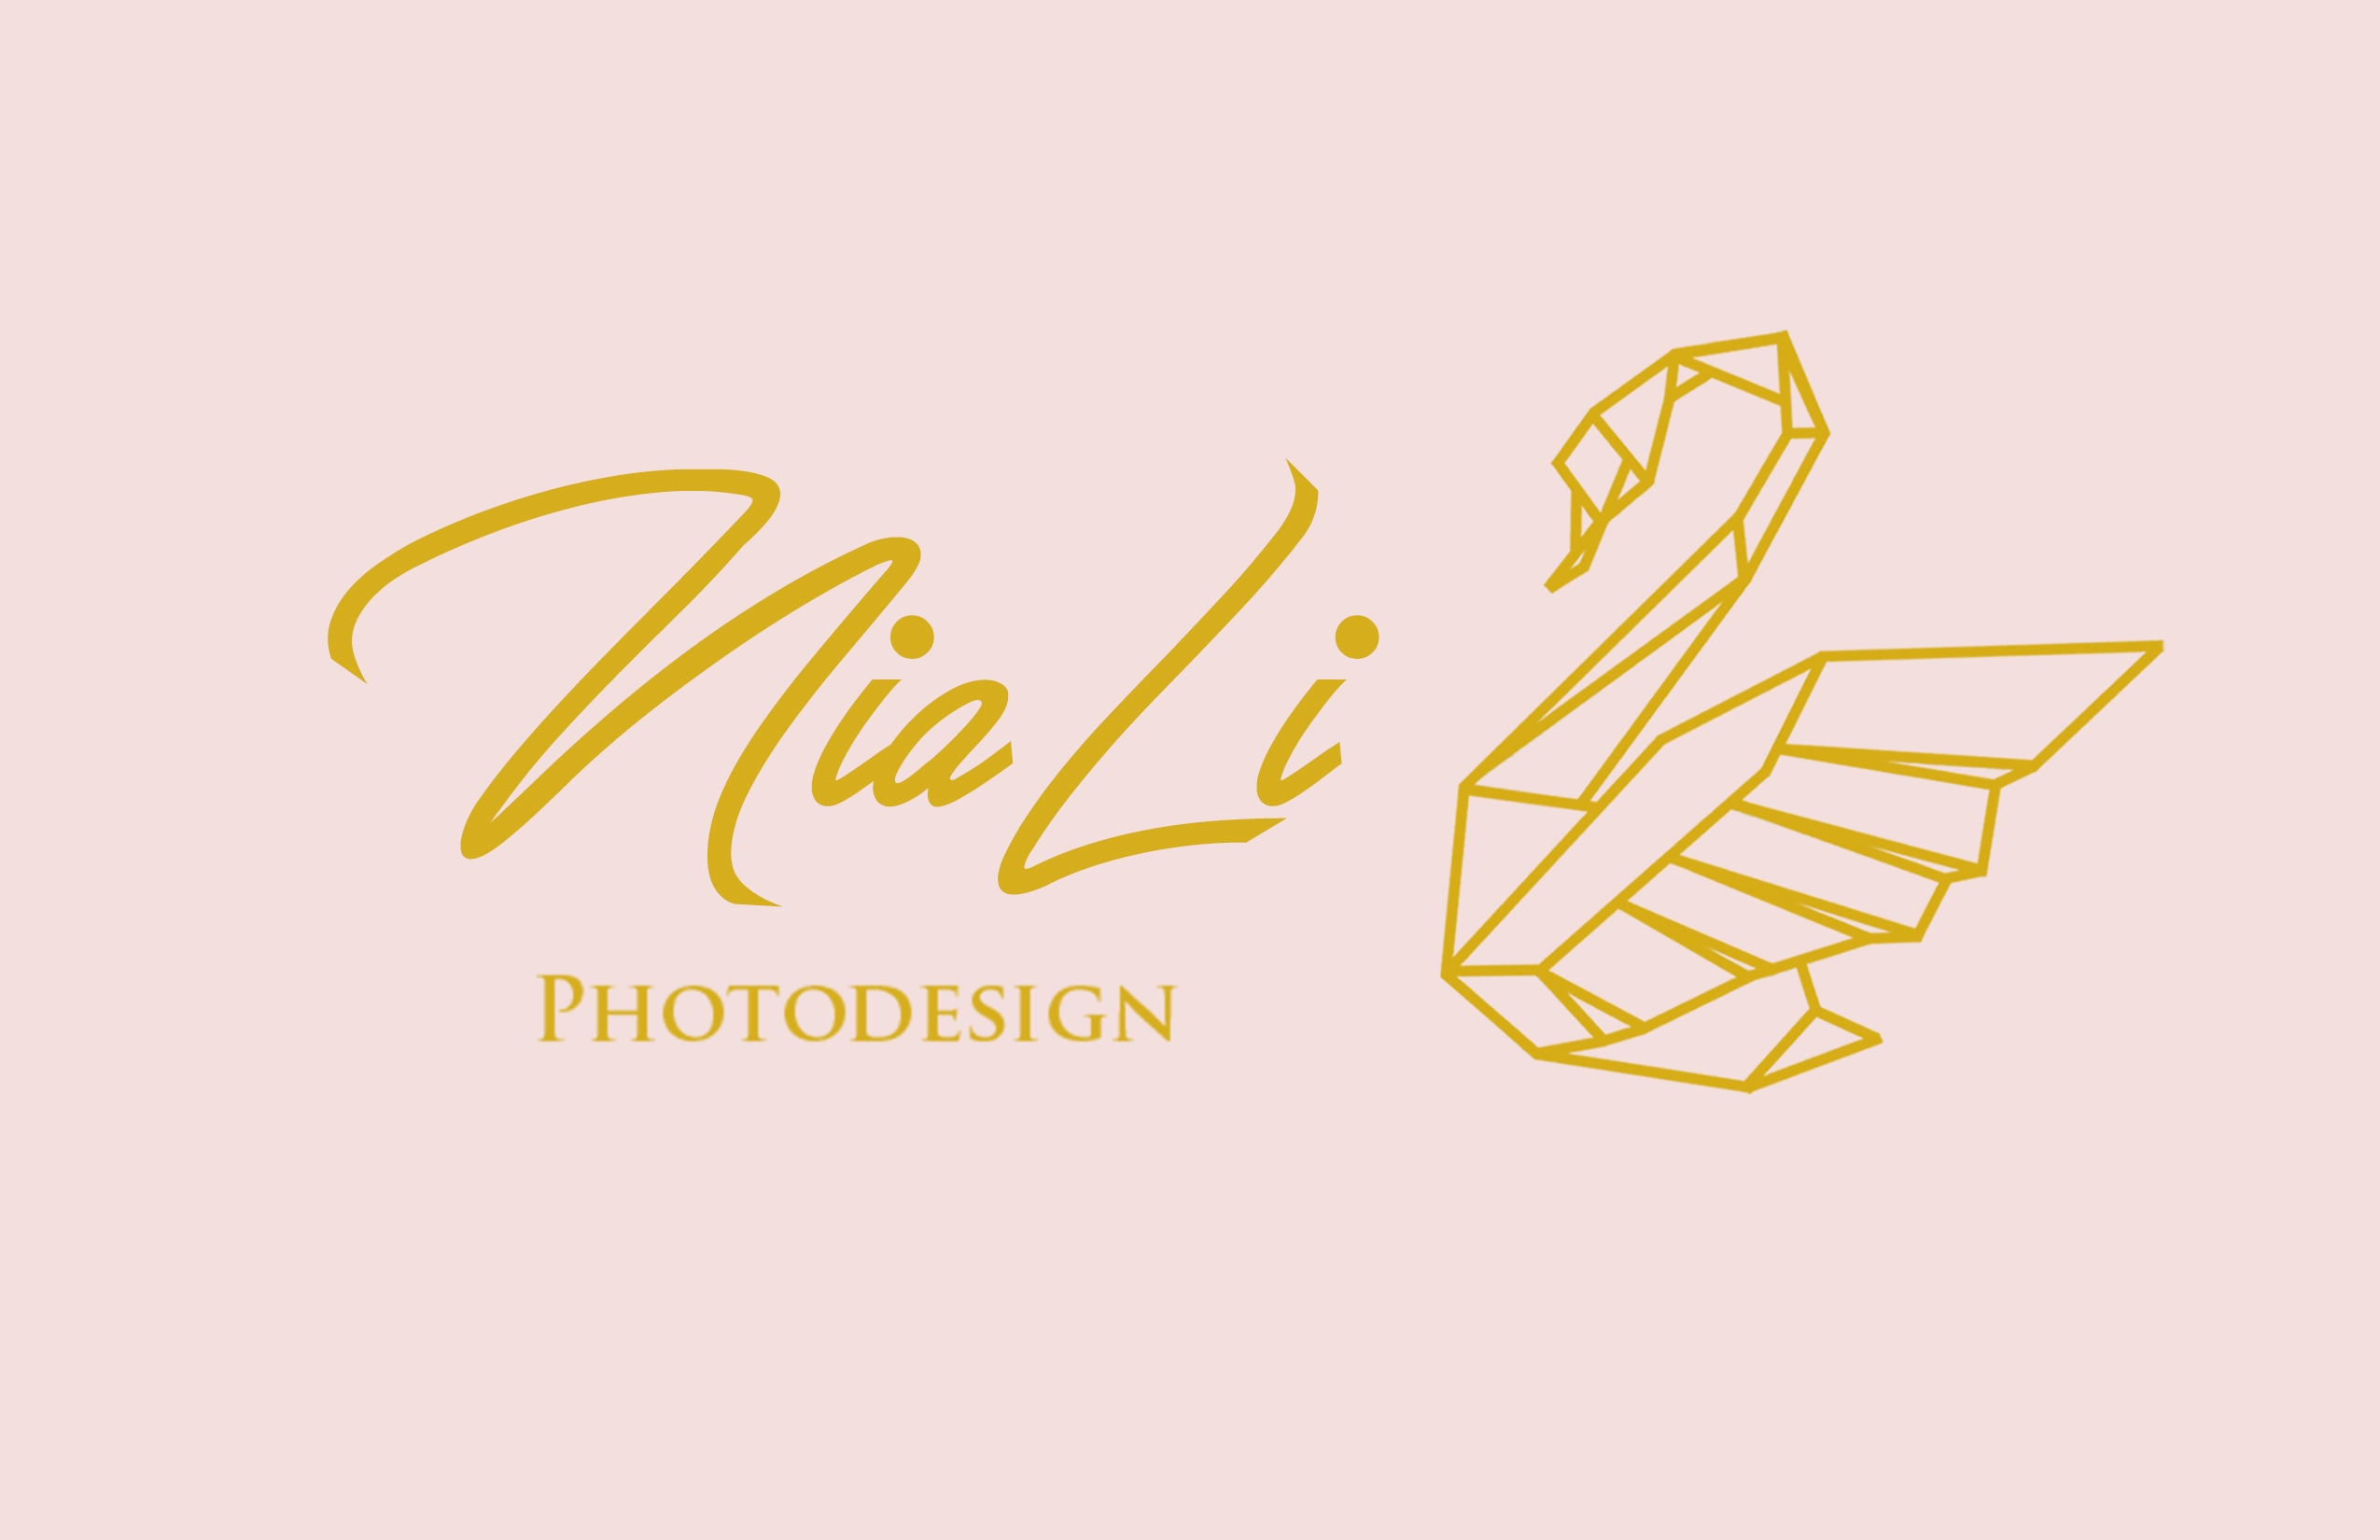 NiaLi Photodesign